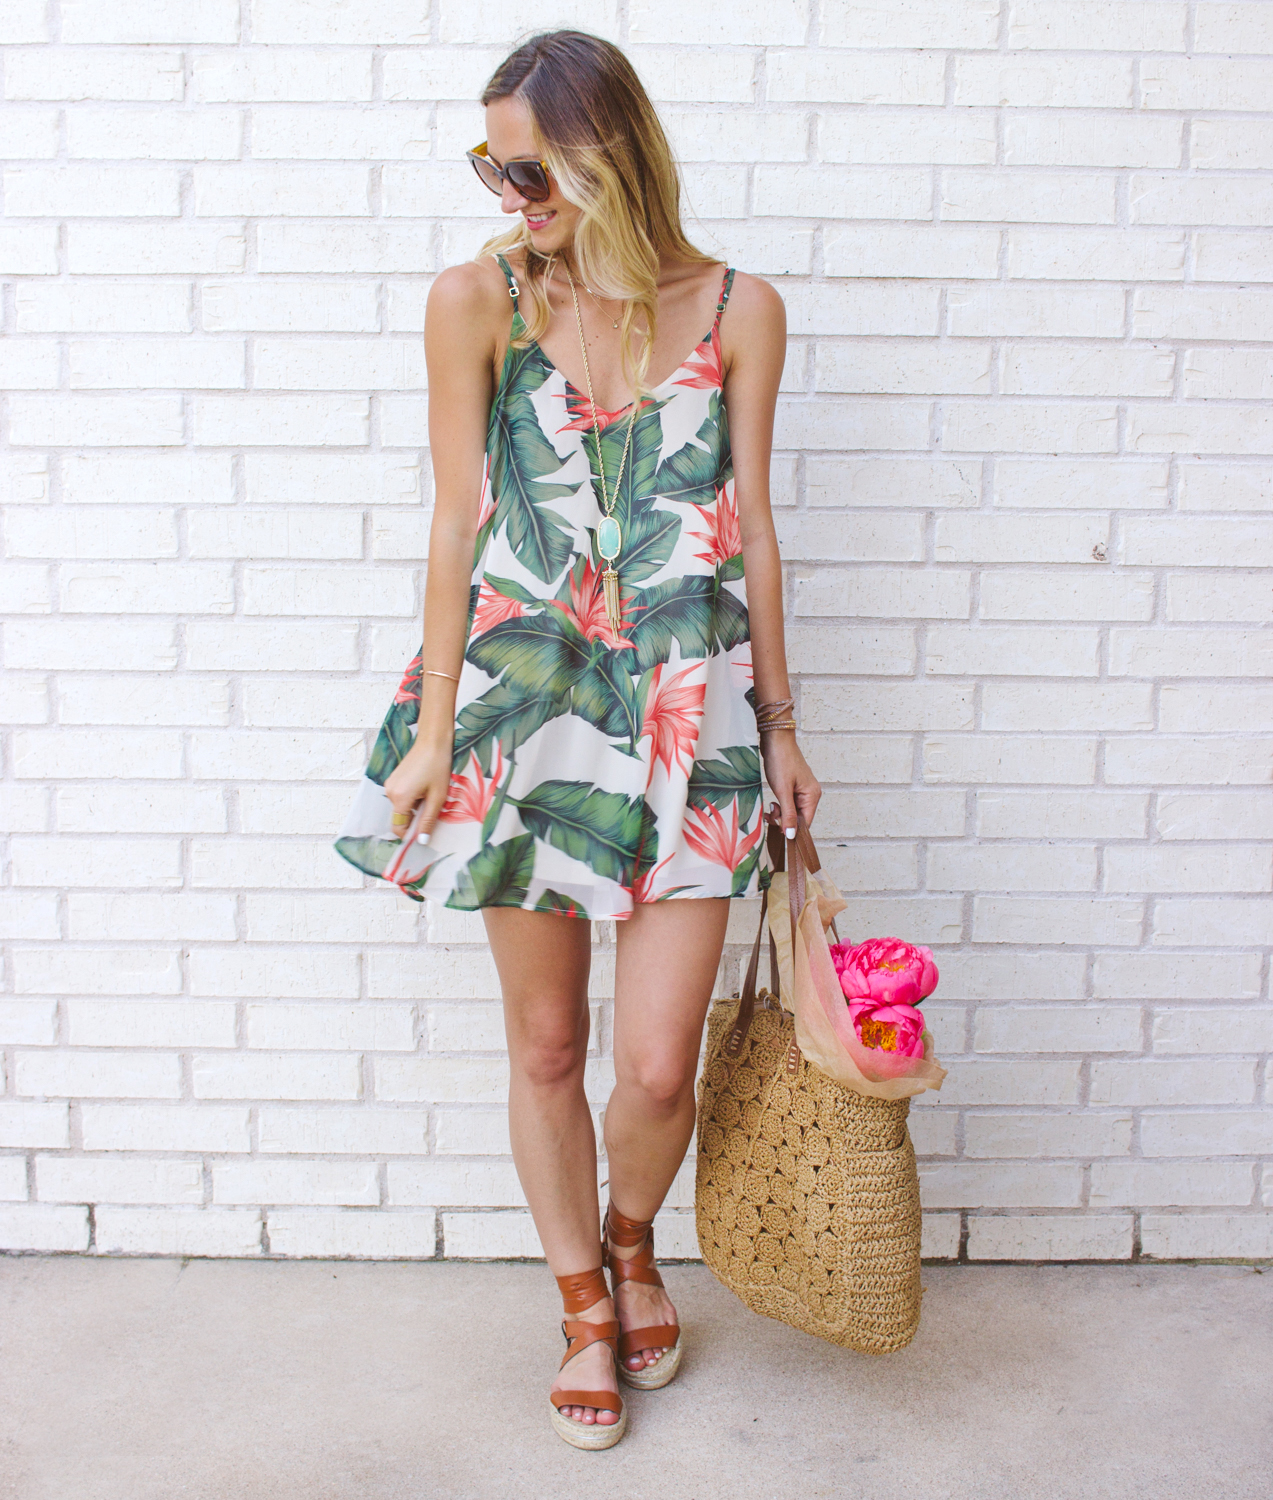 livvyland-blog-austin-texas-fashion-blogger-show-me-your-mumu-palm-print-circus-mini-dress-summer-outfit-colorful-4